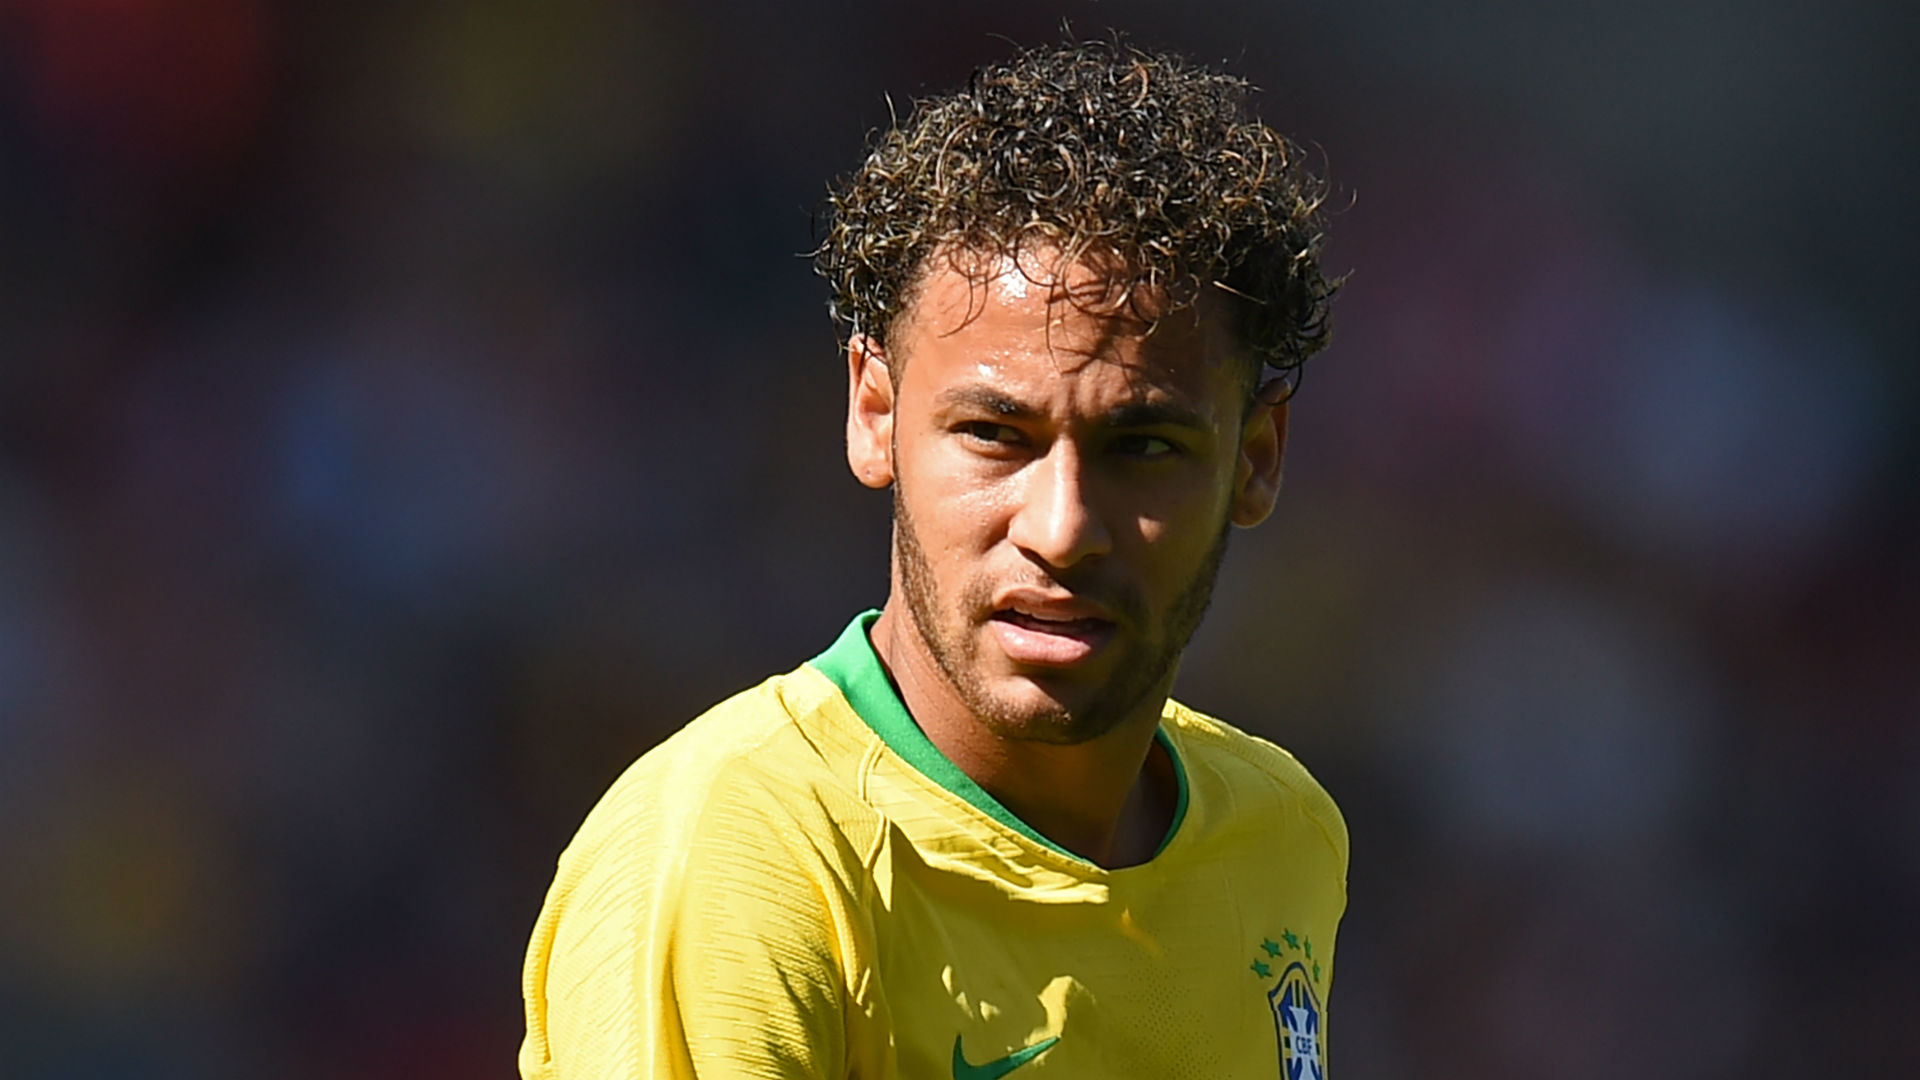 Neymar lauded as one of the world's best as Cafu tips him to be Brazil's talisman